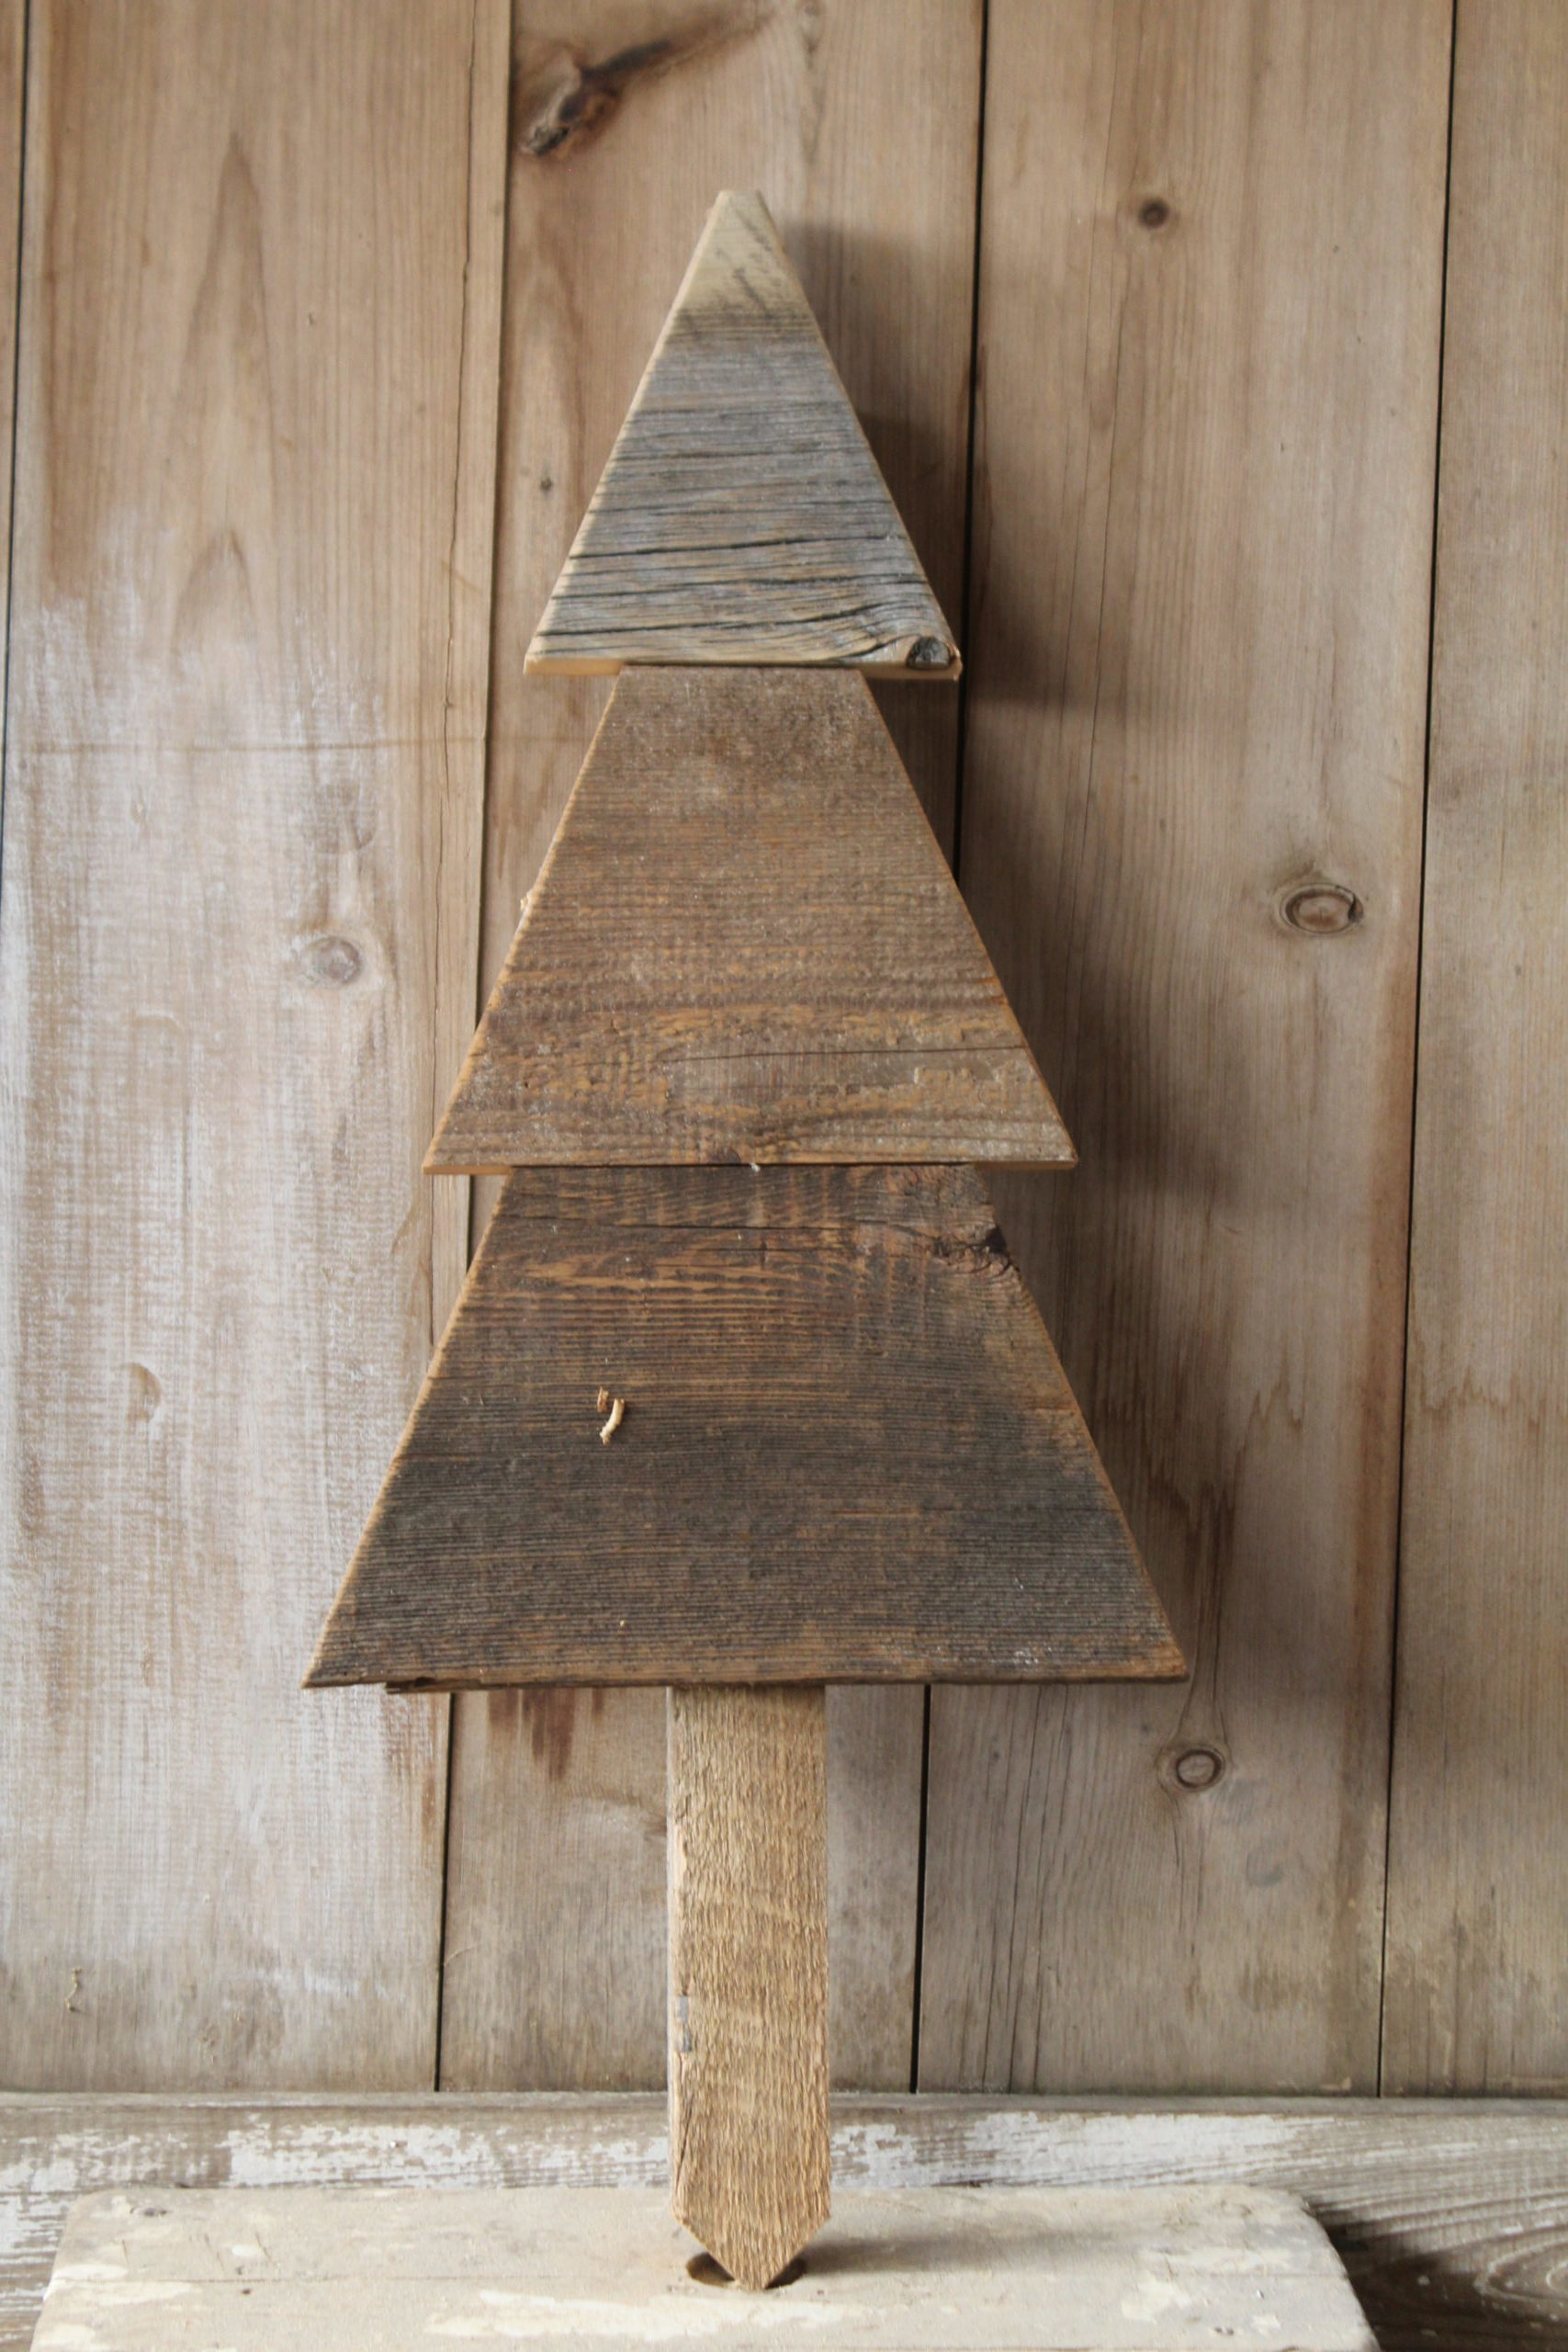 Stony Hollow Crafts Local Handcrafted Creations wholesale retail customers rustic old barnwood poly varieties rustic trestle porch deacon benches planters birdhouses holiday seasonal